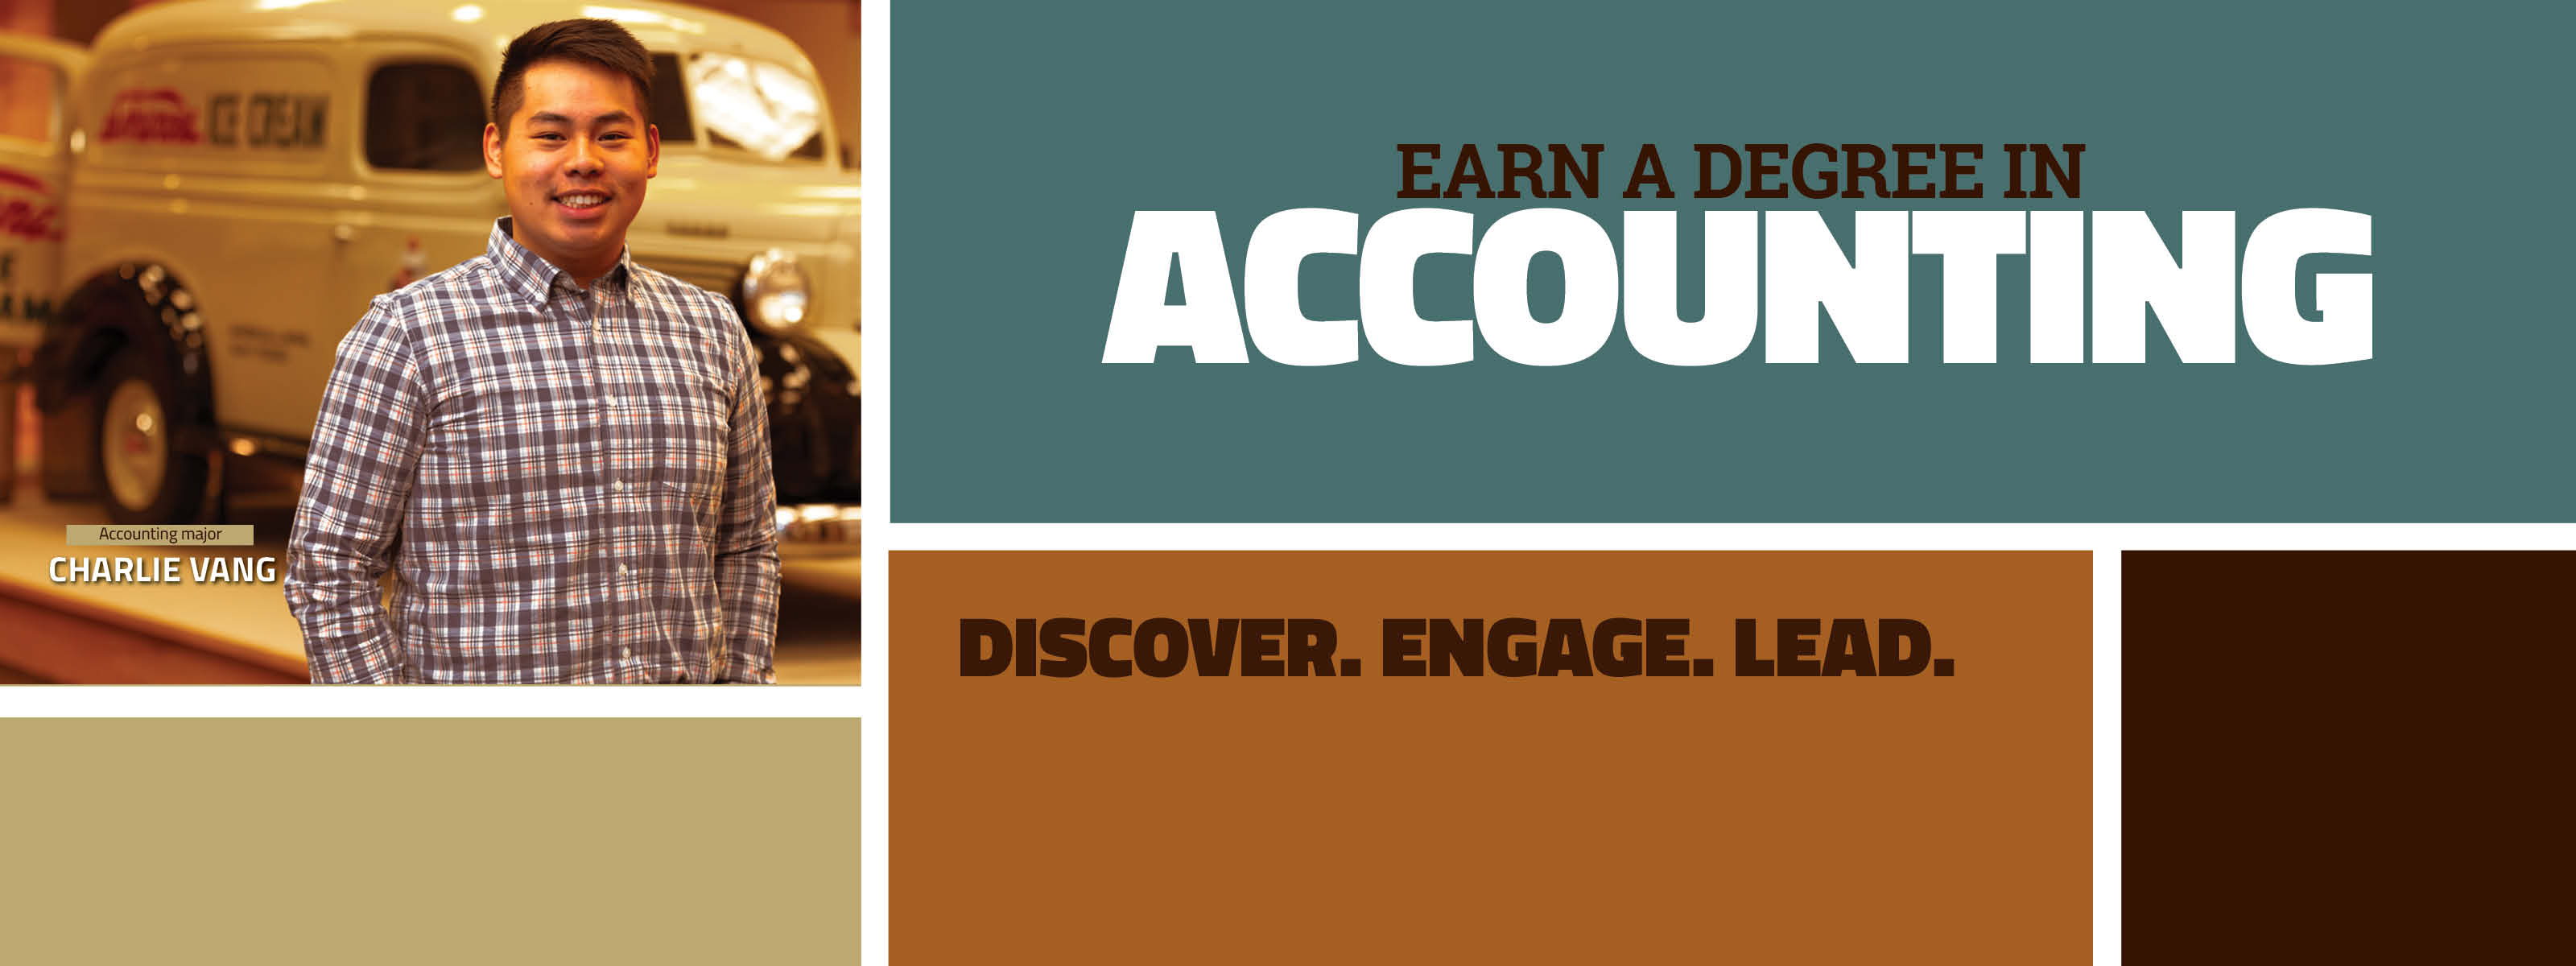 Earn A Degree In Accounting - Discover. Engage. Lead.